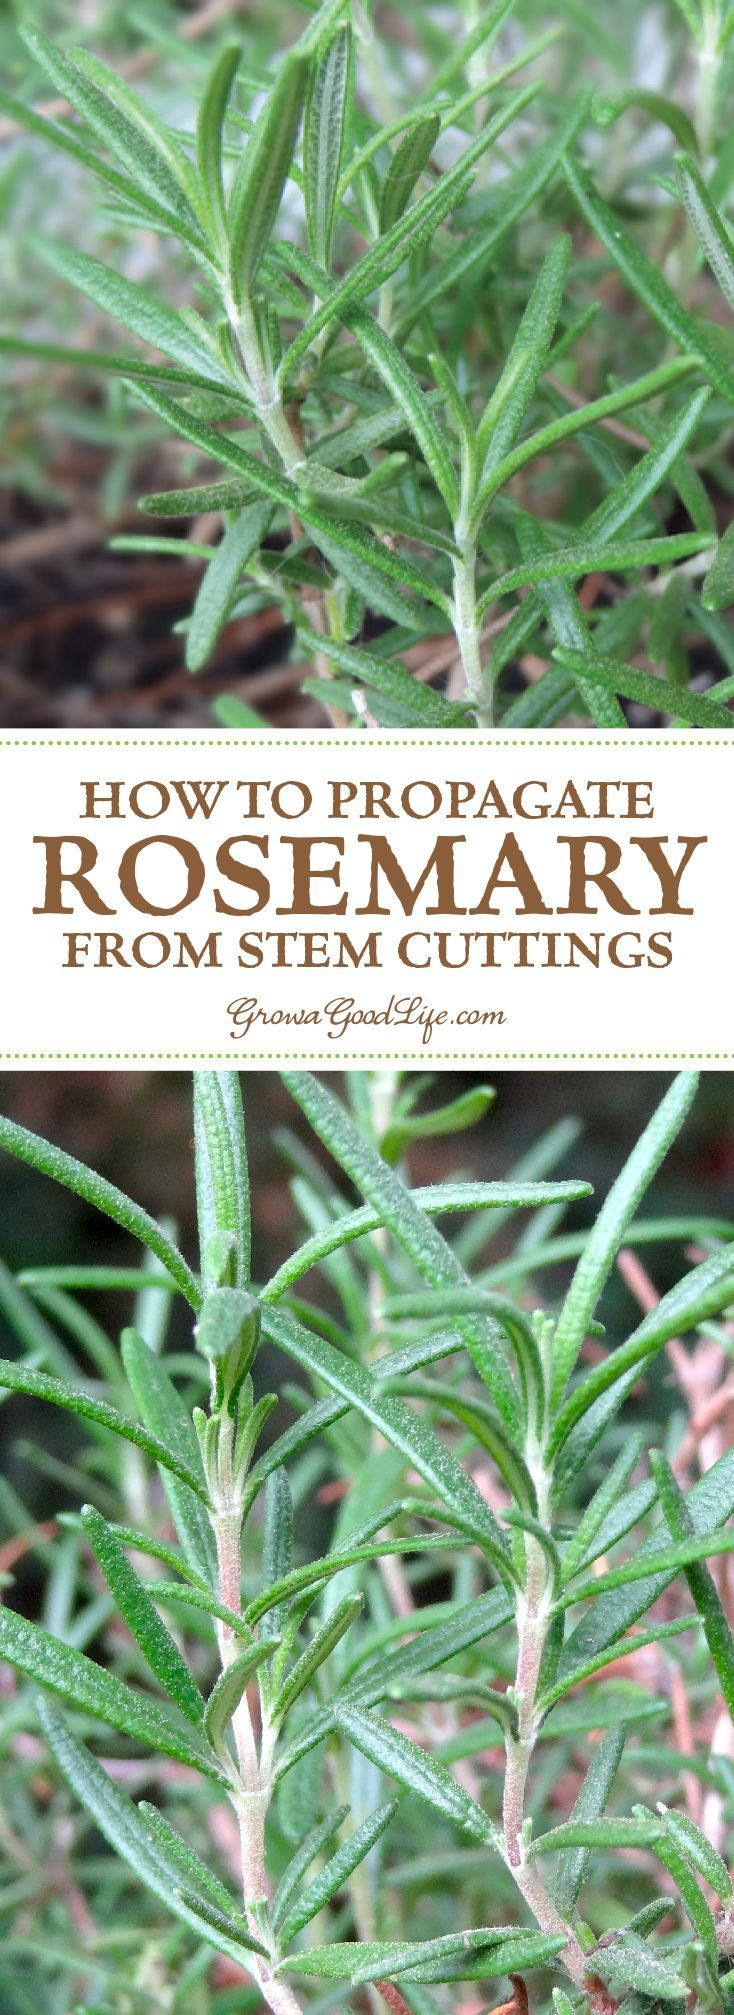 Instead of purchasing a new rosemary plant every year or starting new plants from seeds, try growing your own from stem cuttings. It is easy to take rosemary cuttings from an established mother plant and grow new rosemary plants.